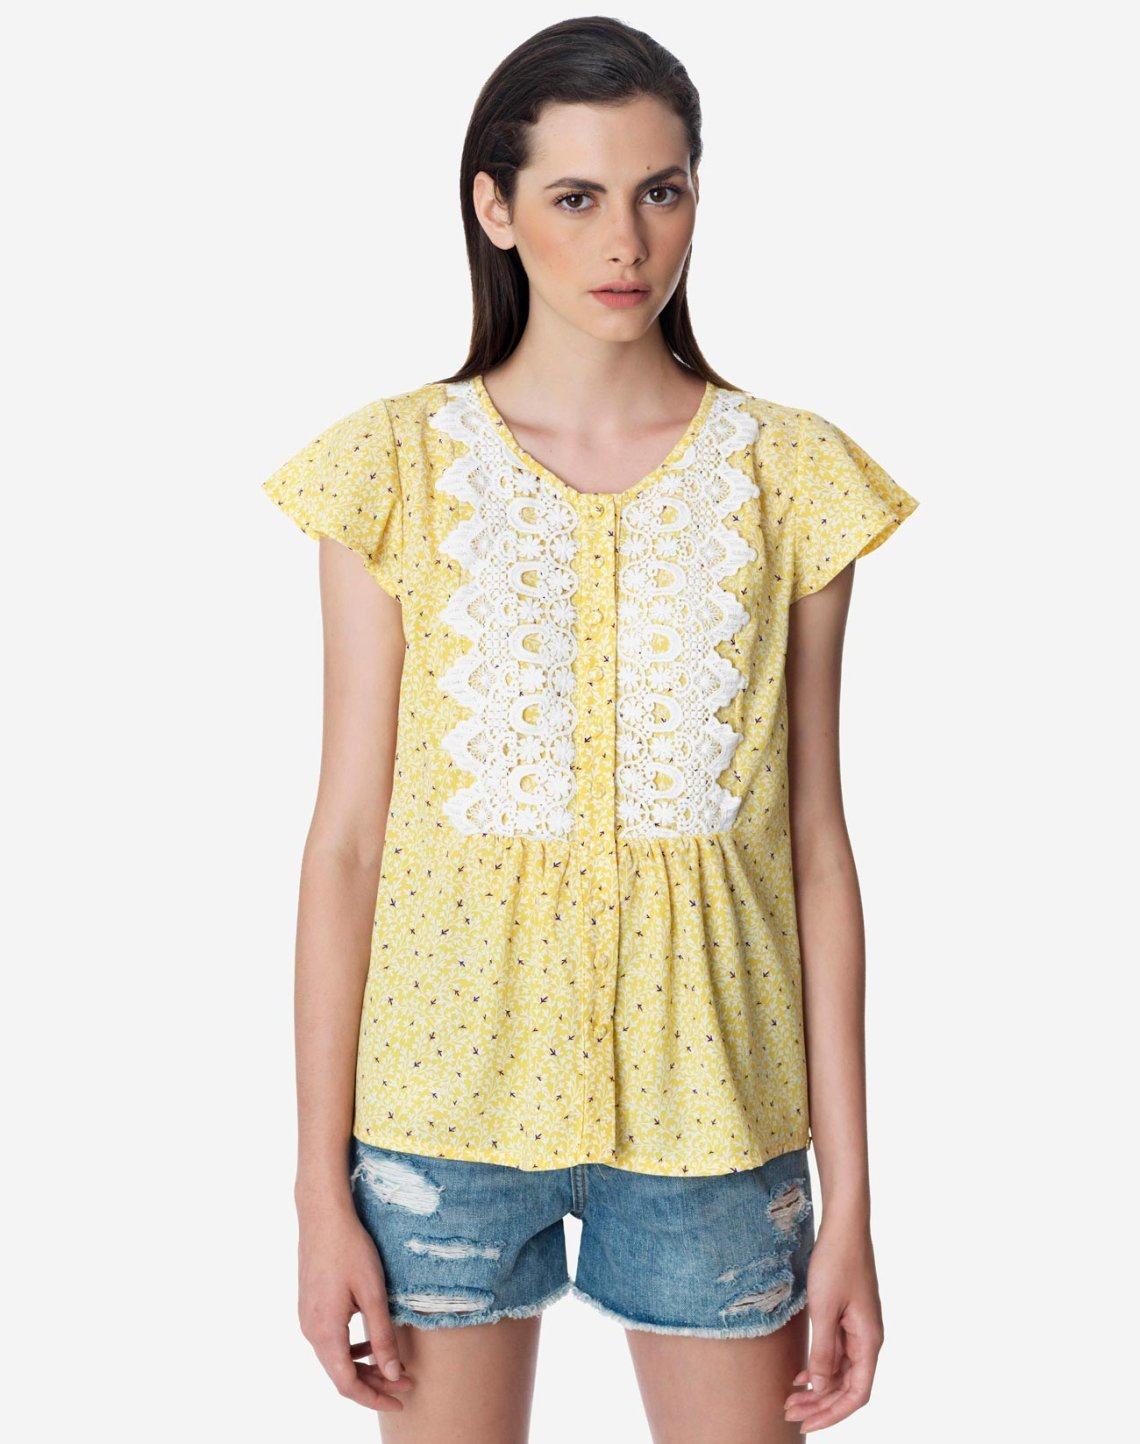 Printed top with lace detail